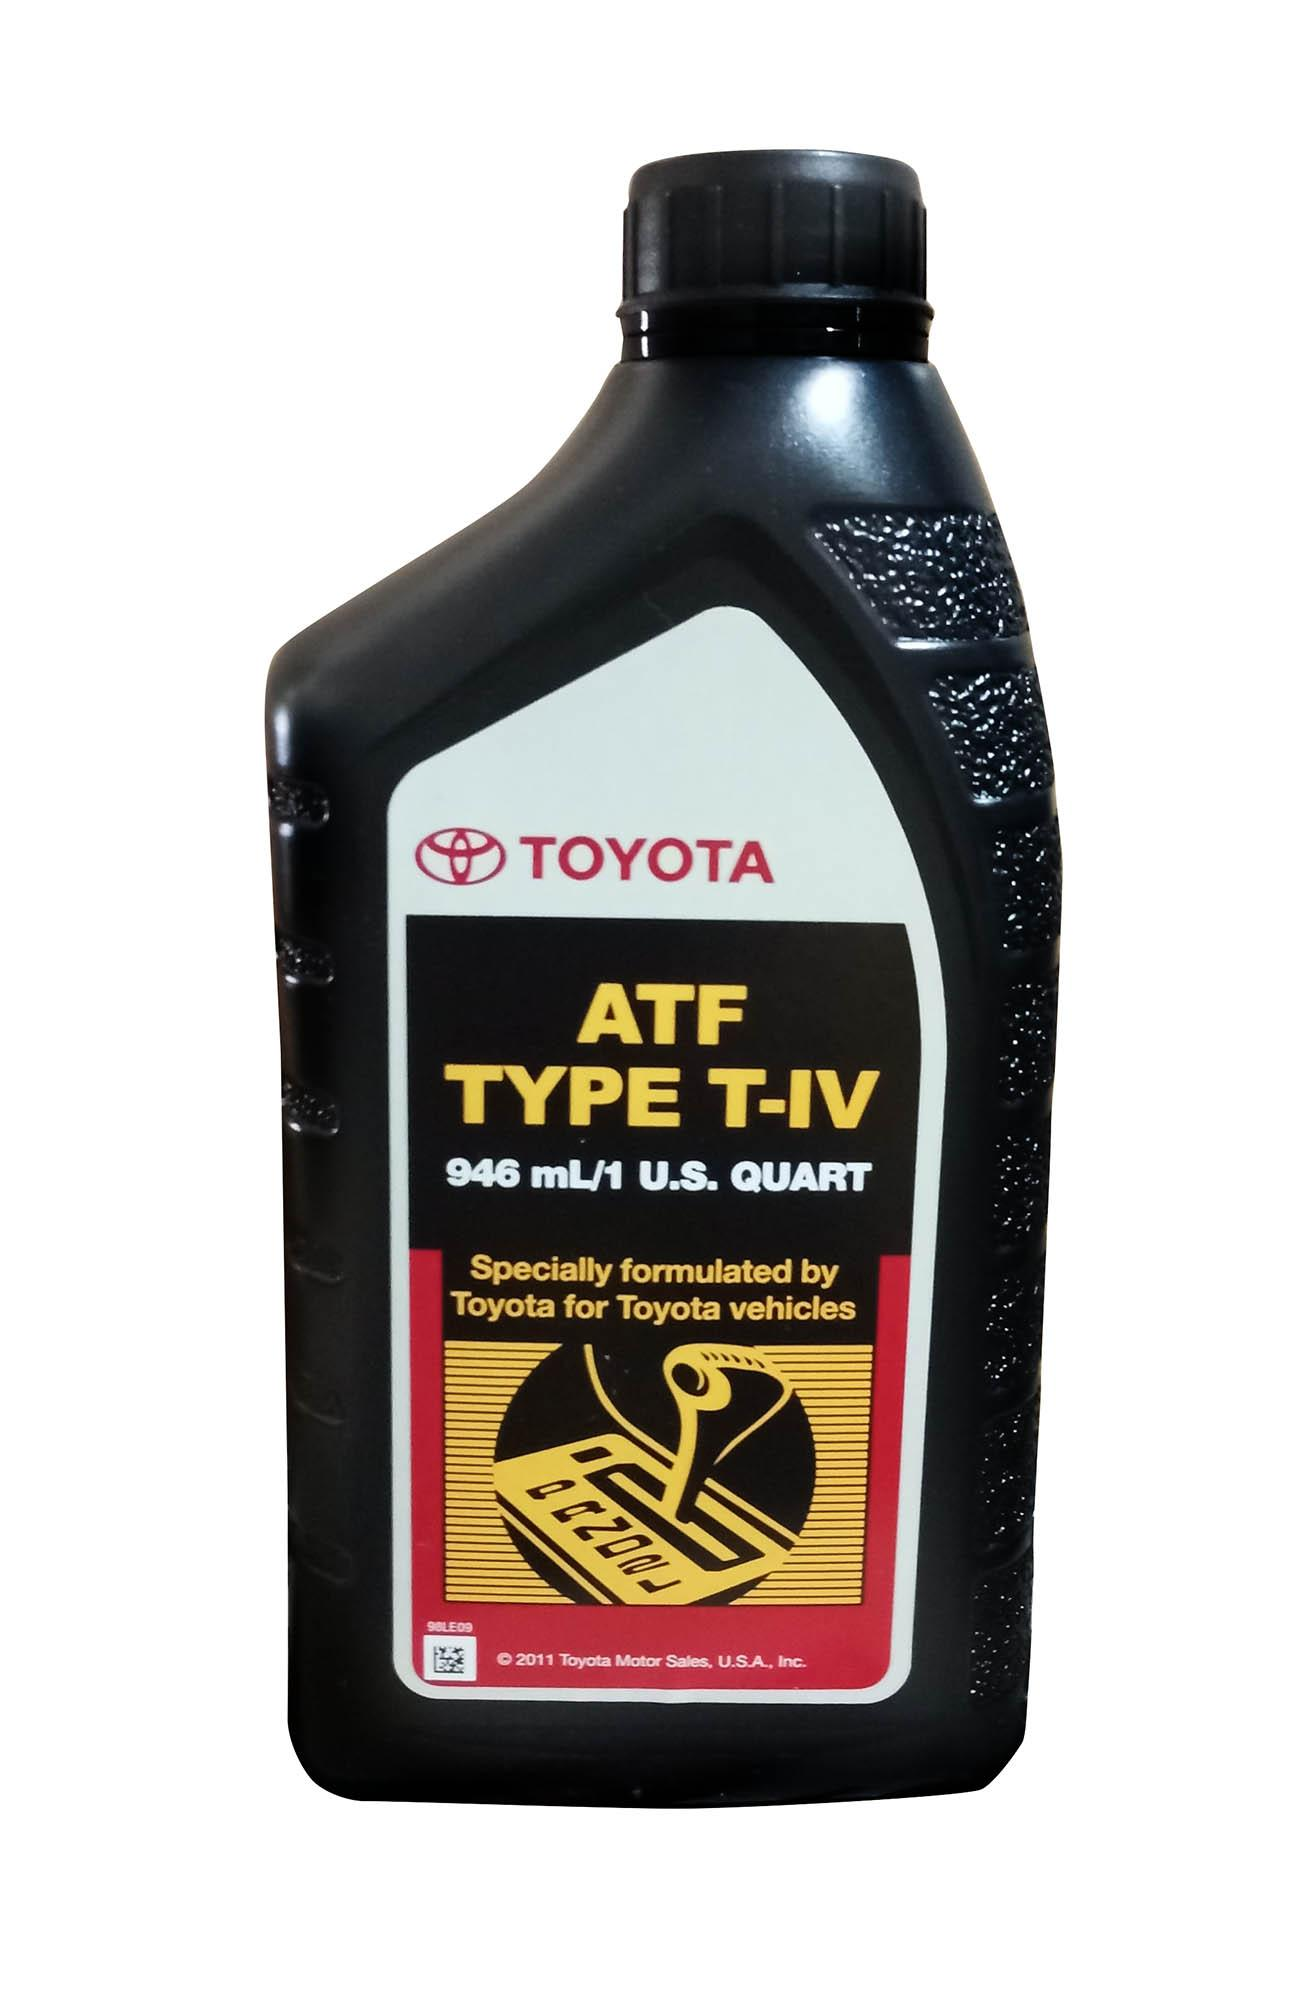 Toyota Philippines Price List Car Parts Accessories For Denso Alternator Wiring Diagram Type 4 Atf T Iv Automatic Transmission Fluid 1l 1 Liter